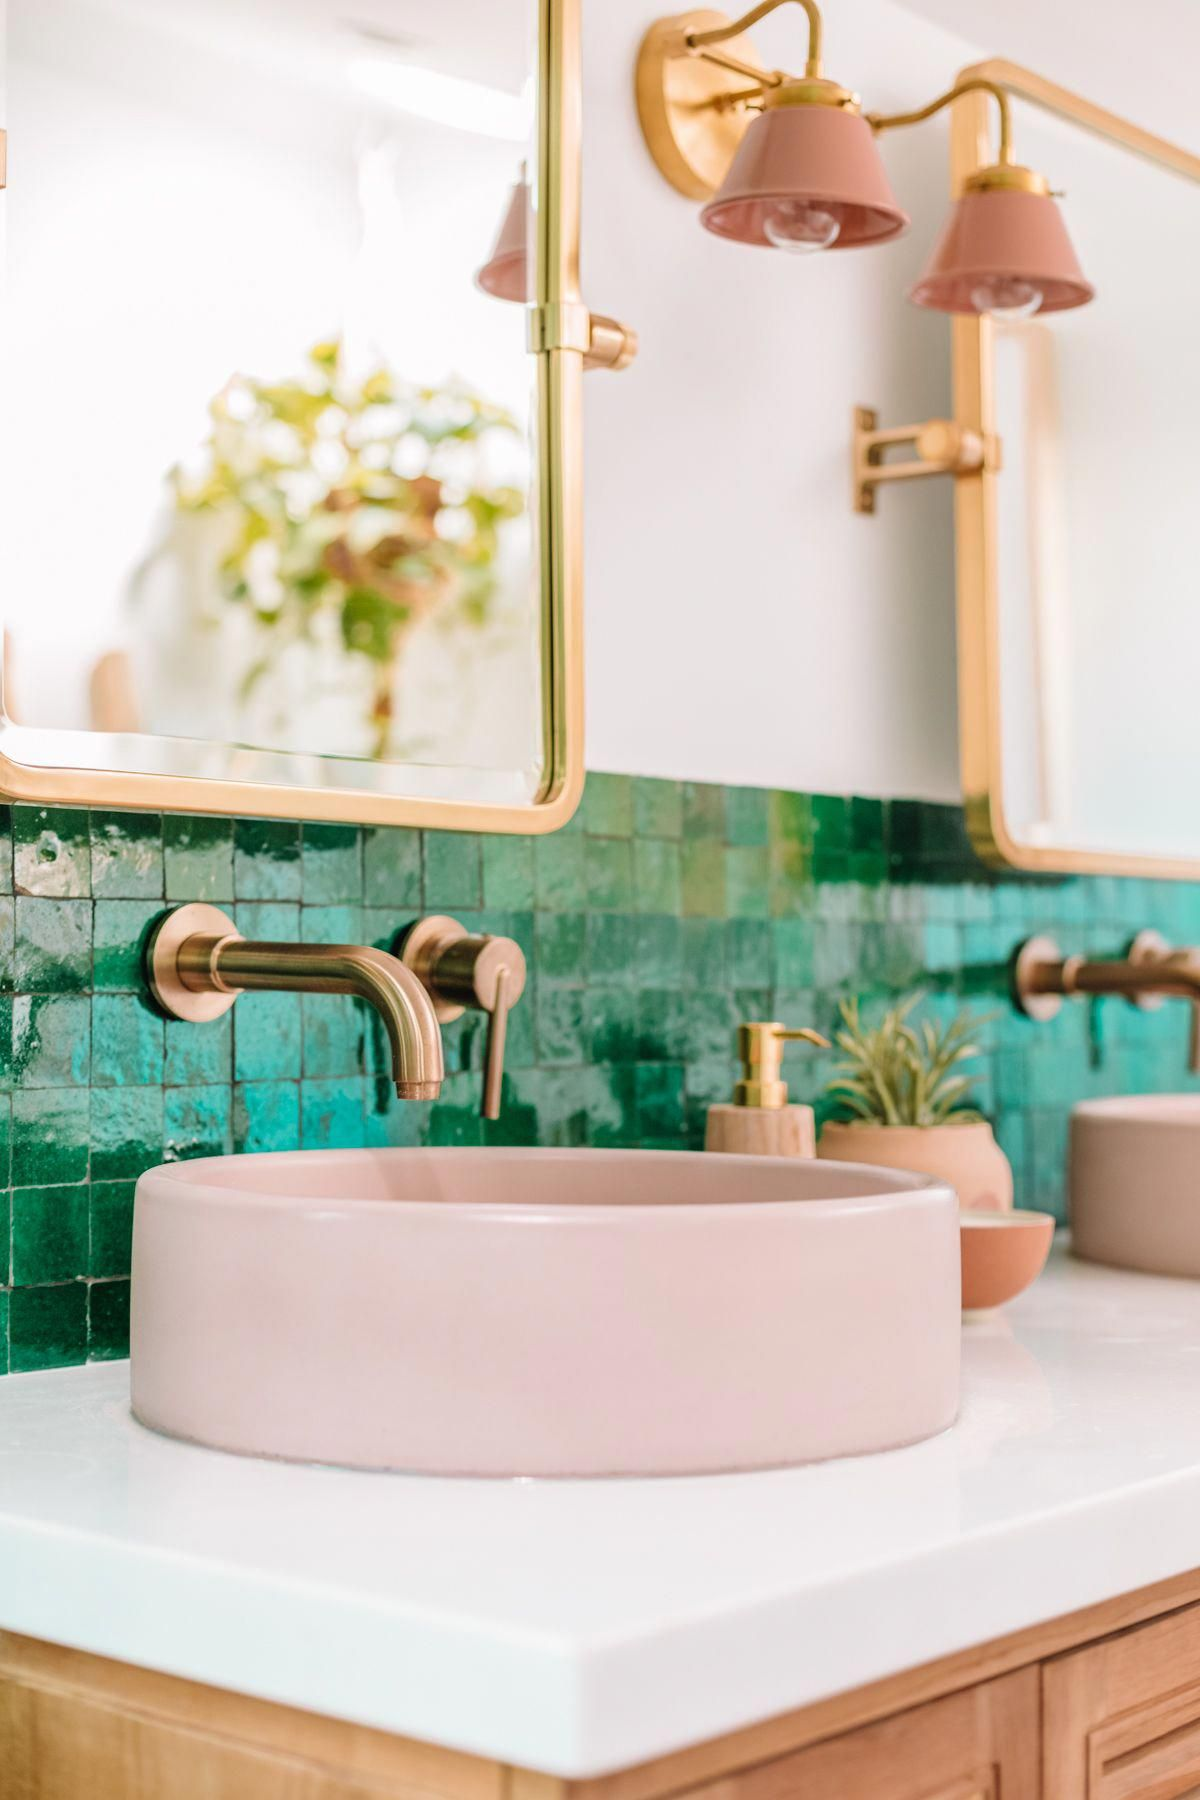 Jade Green Zellige Tiles Handmade Moroccan Terracotta Gold Hardware And A Blush Pink Cement Bowl Ba Green Tile Bathroom Mosaic Bathroom Tile Green Bathroom